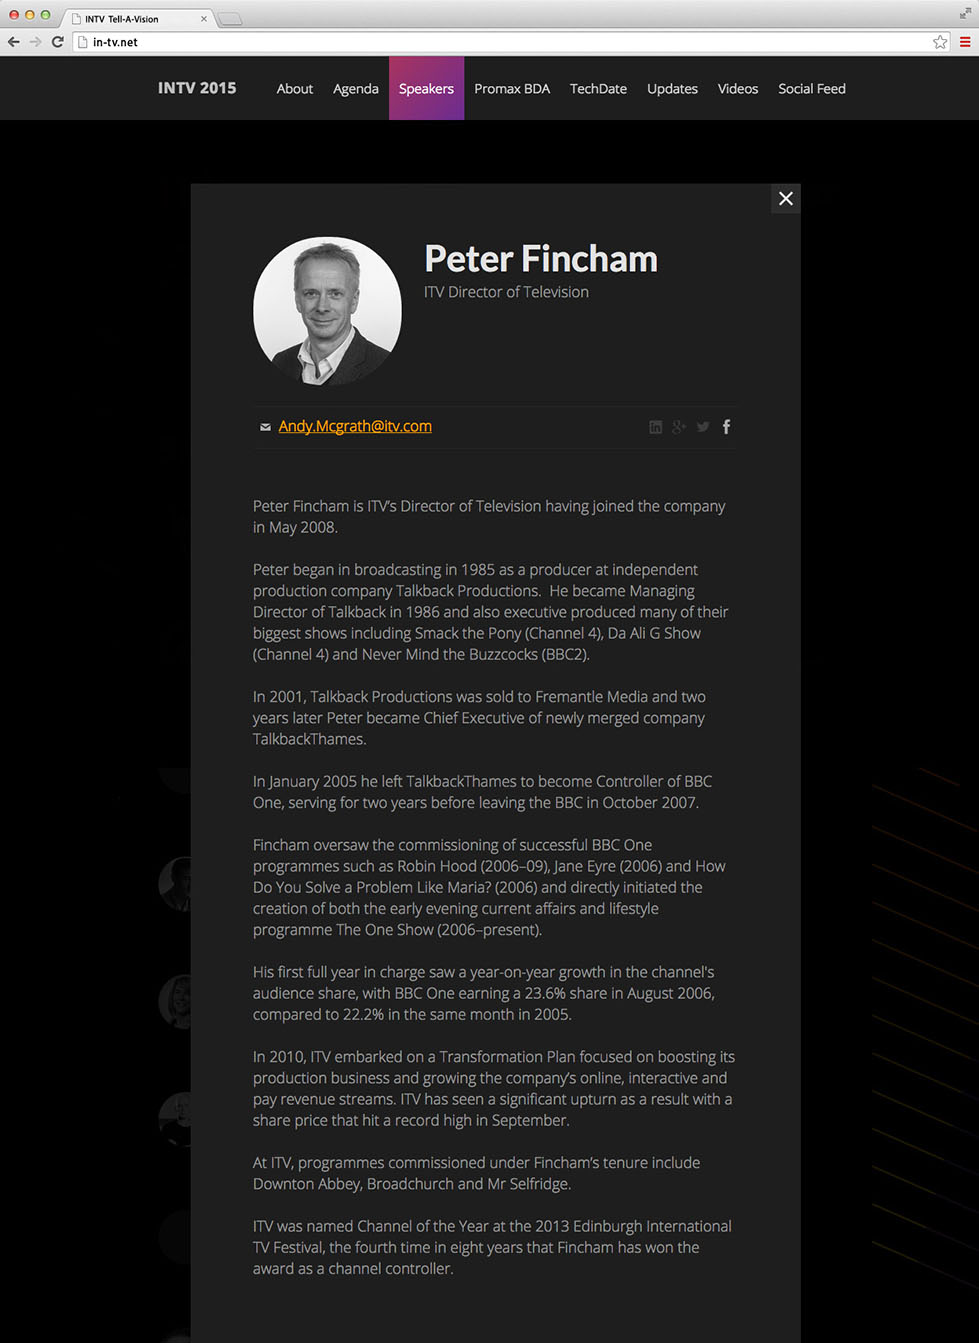 Speaker page on the desktop site, INTV conference